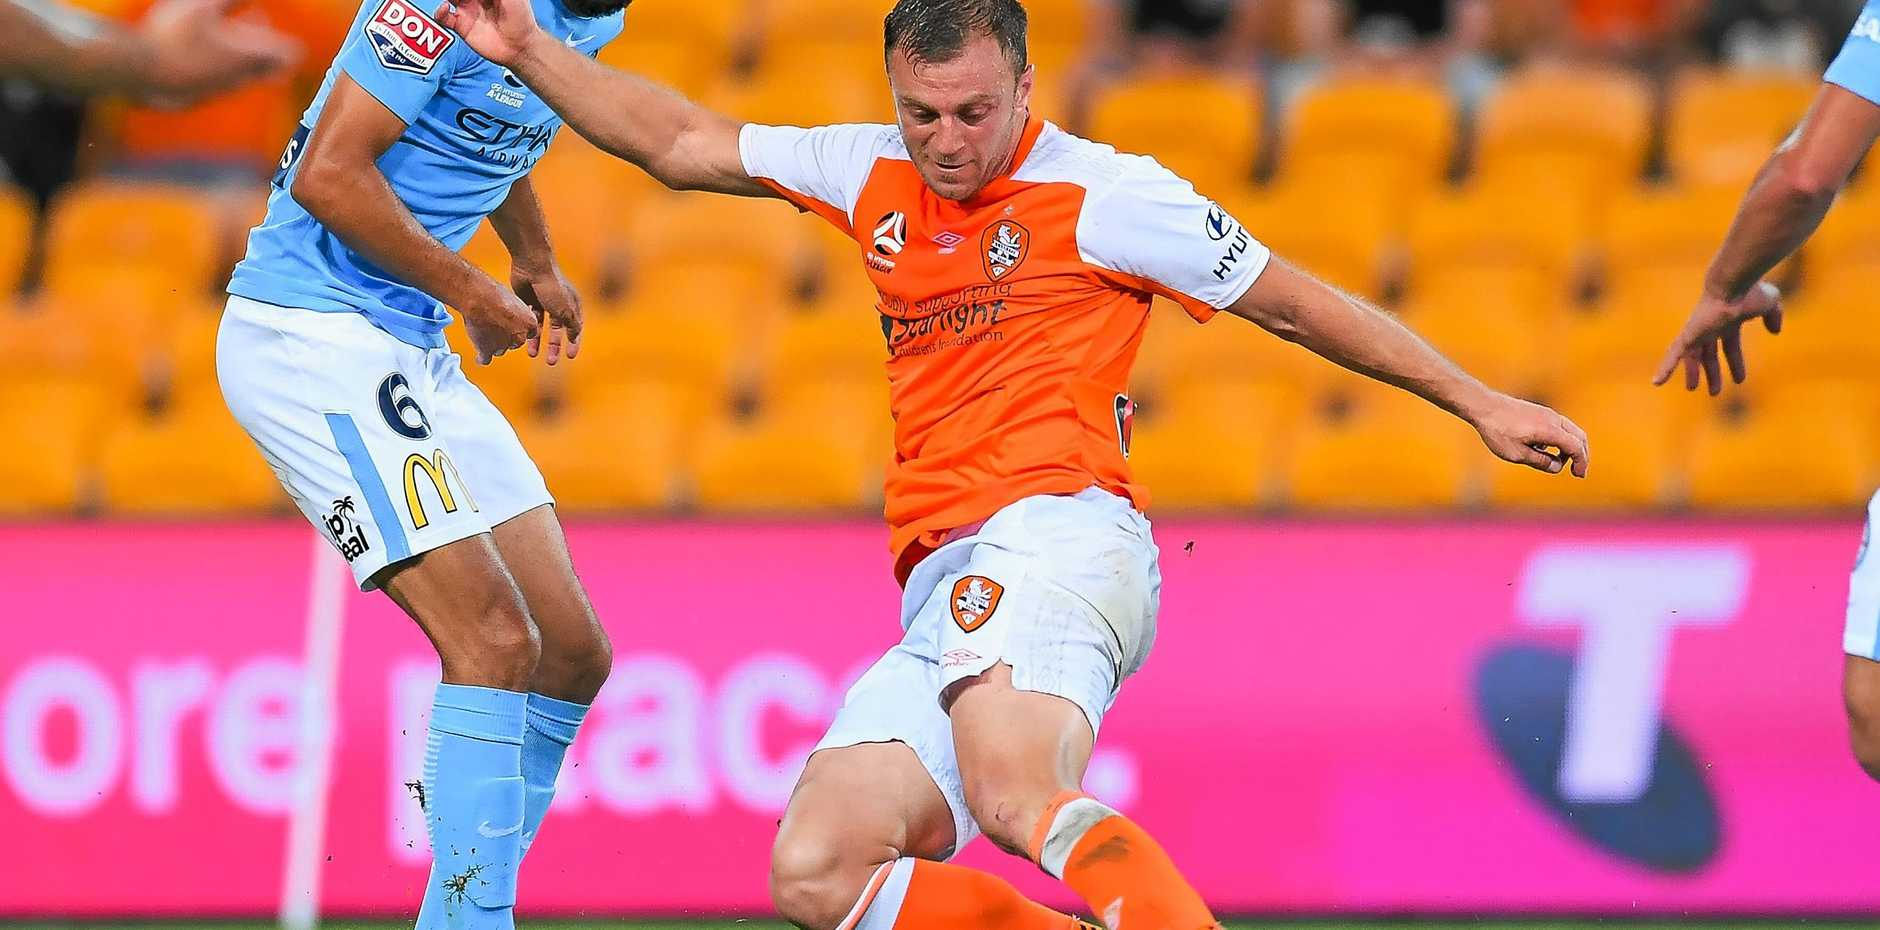 Brisbane's Avram Papadopoulos (right) faces further sanctions after being sent off in the match against Sydney FC.